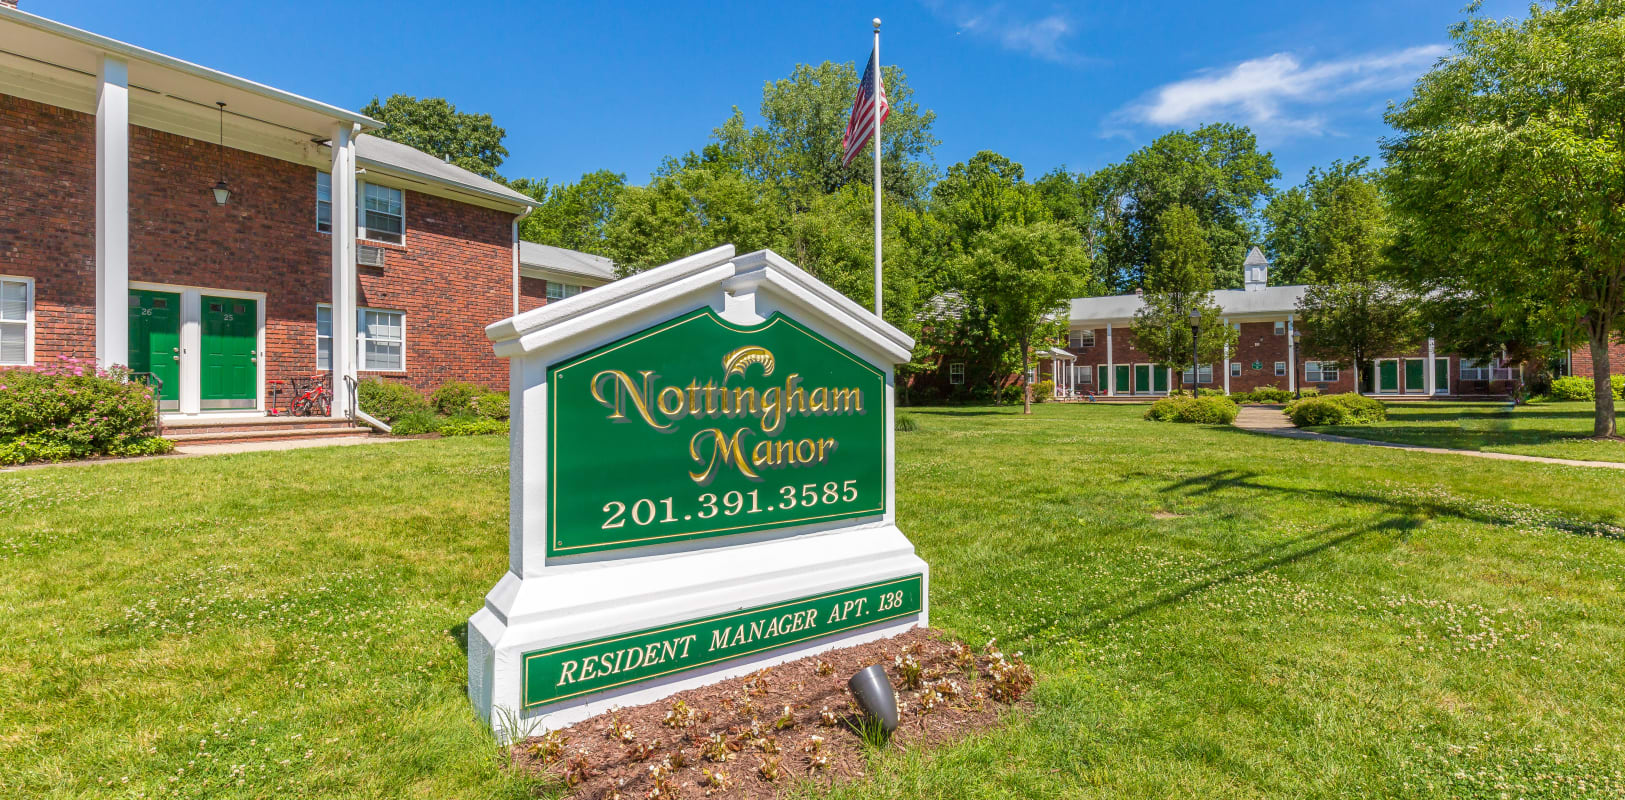 Nottingham Manor sign in front of apartments in the middle of large green lawn in Montvale, New Jersey